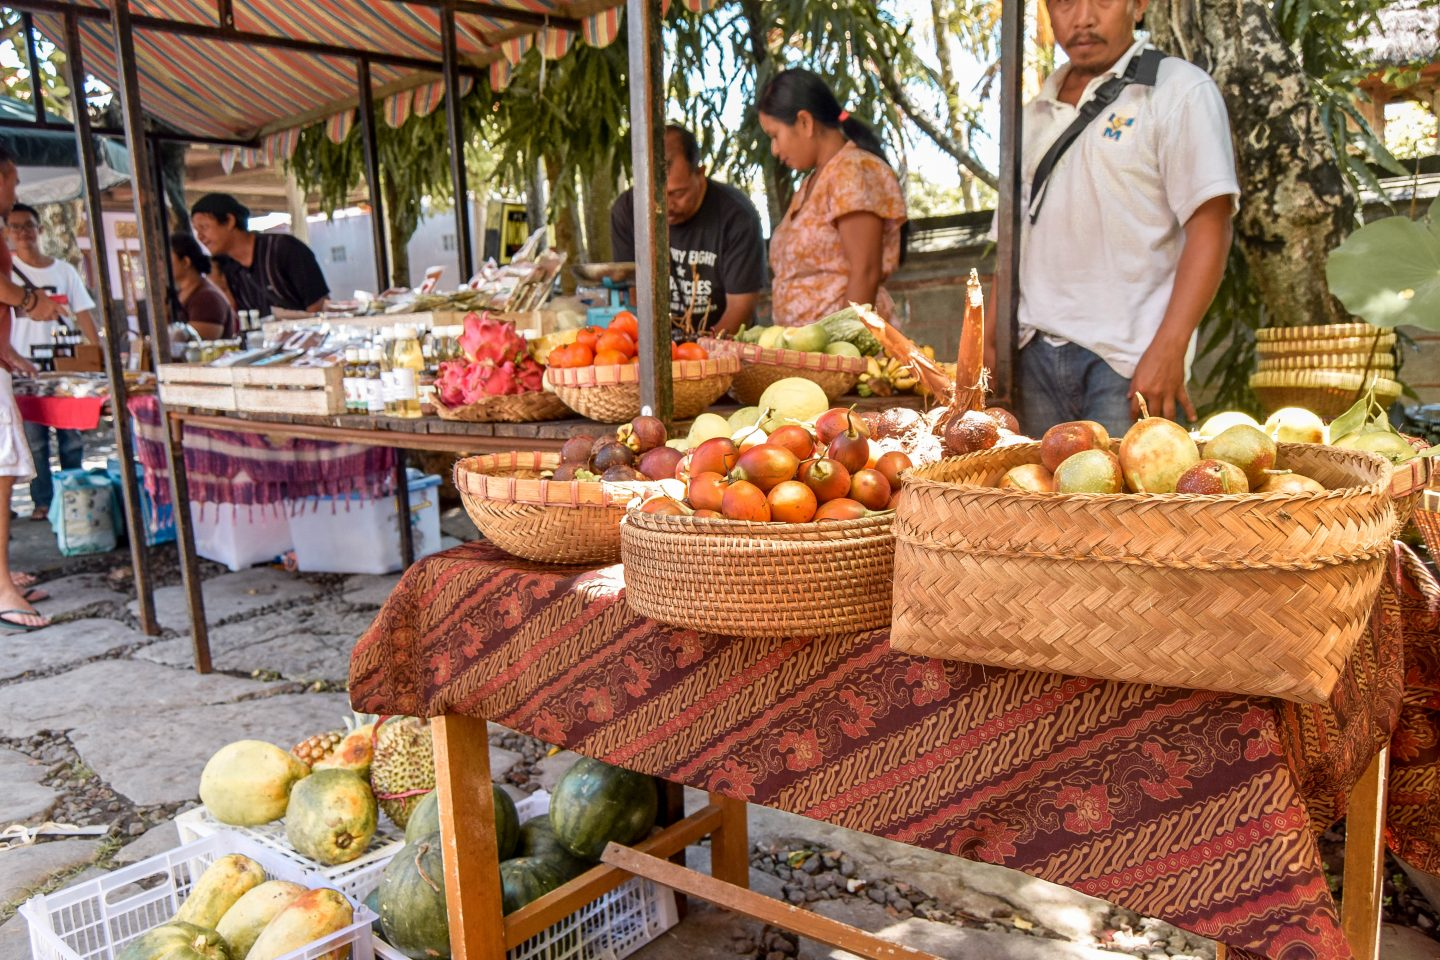 Wanderers & Warriors - Samadi Market - Markets In Bali - A Canggu Market Guide